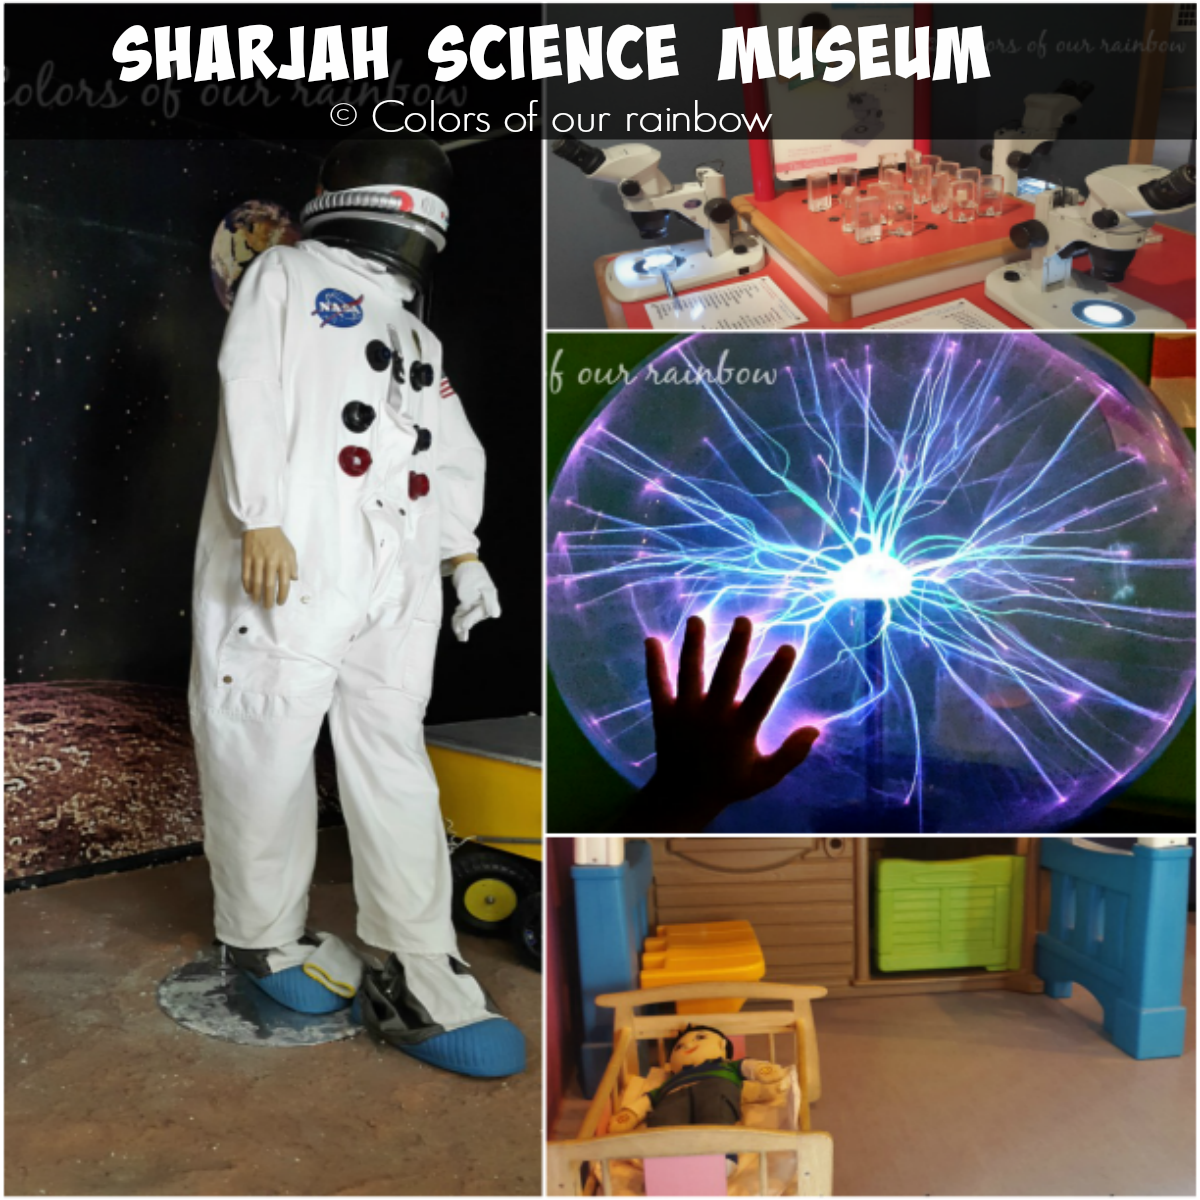 Sharjah Science Museum @colorsofourrainbow.blogspot.ae